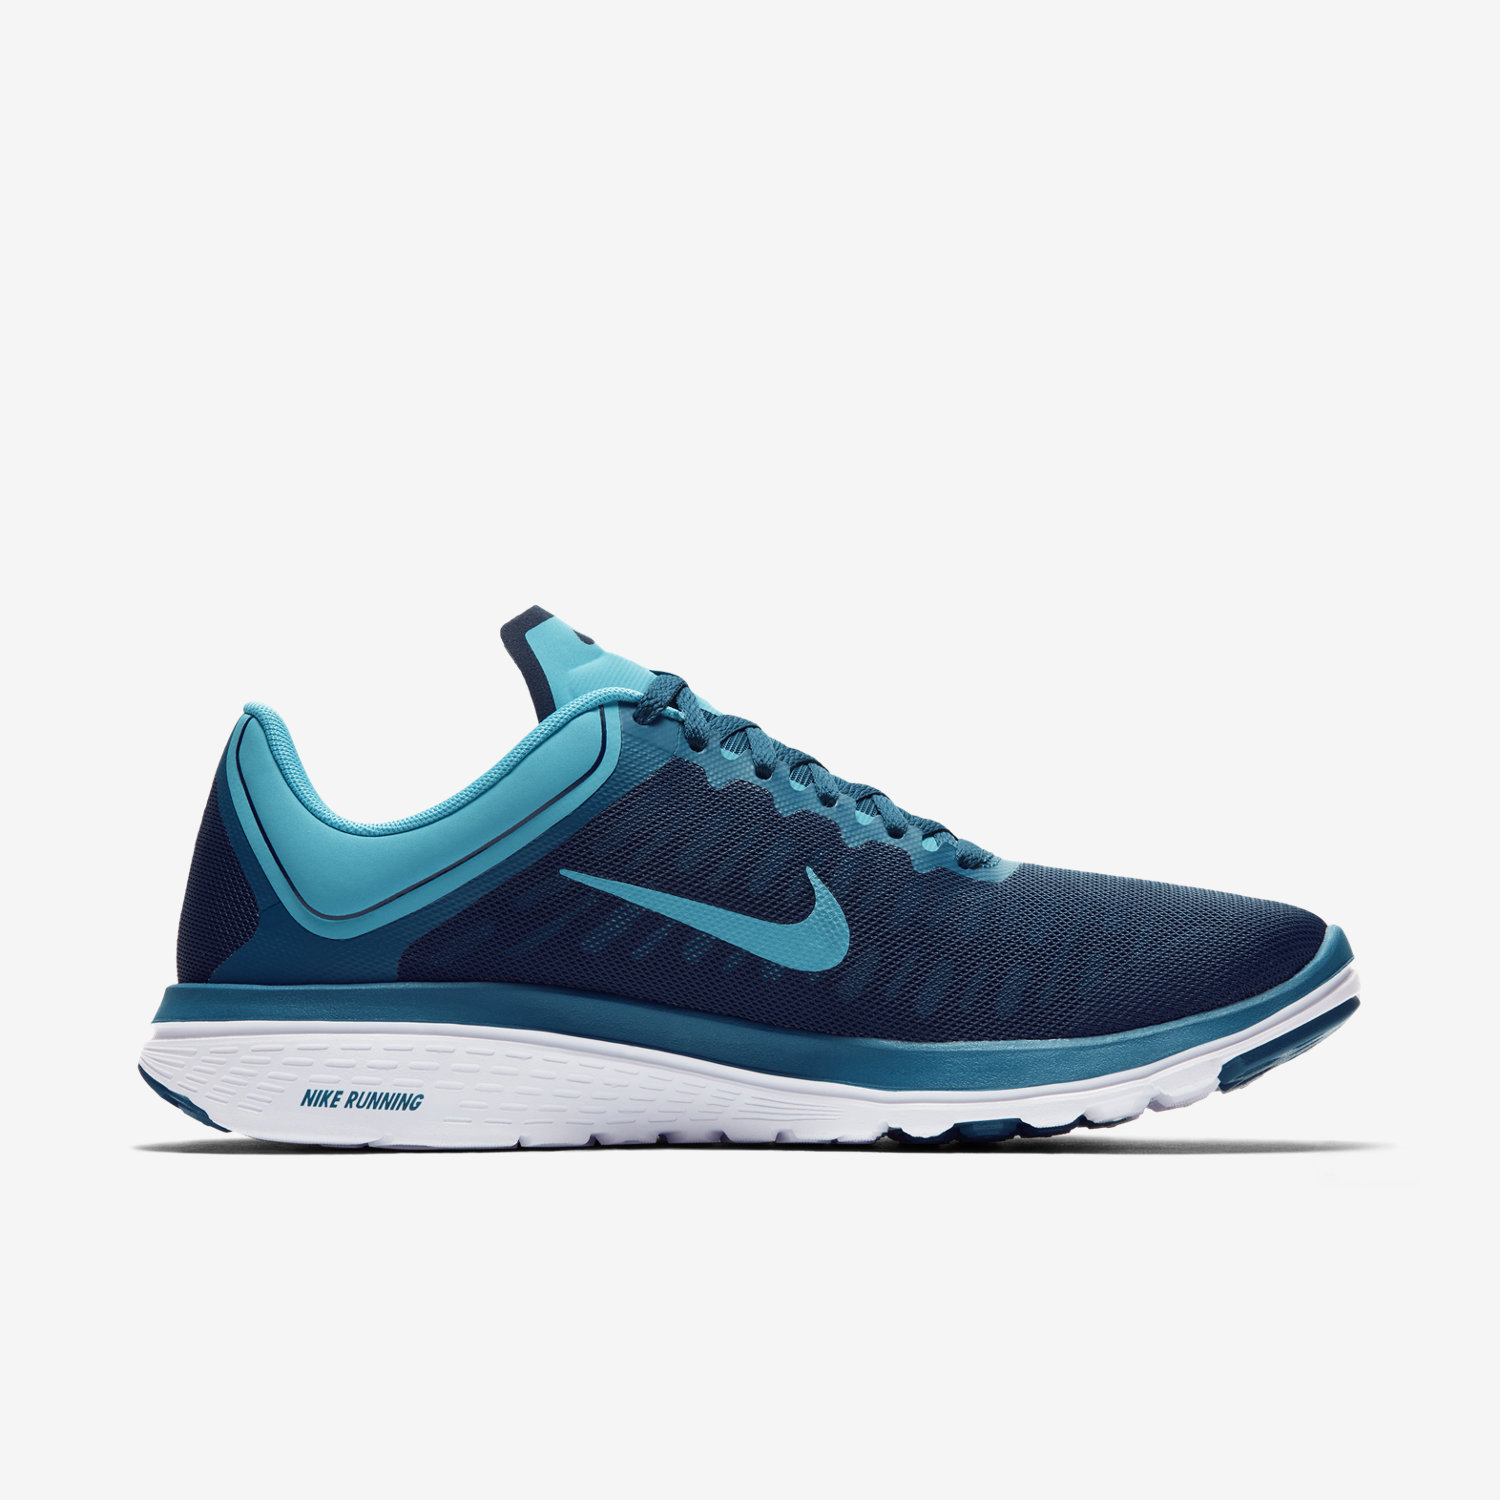 Nike FS Lite Run 4 Womens 852448 401 Chlorine Blue Mesh